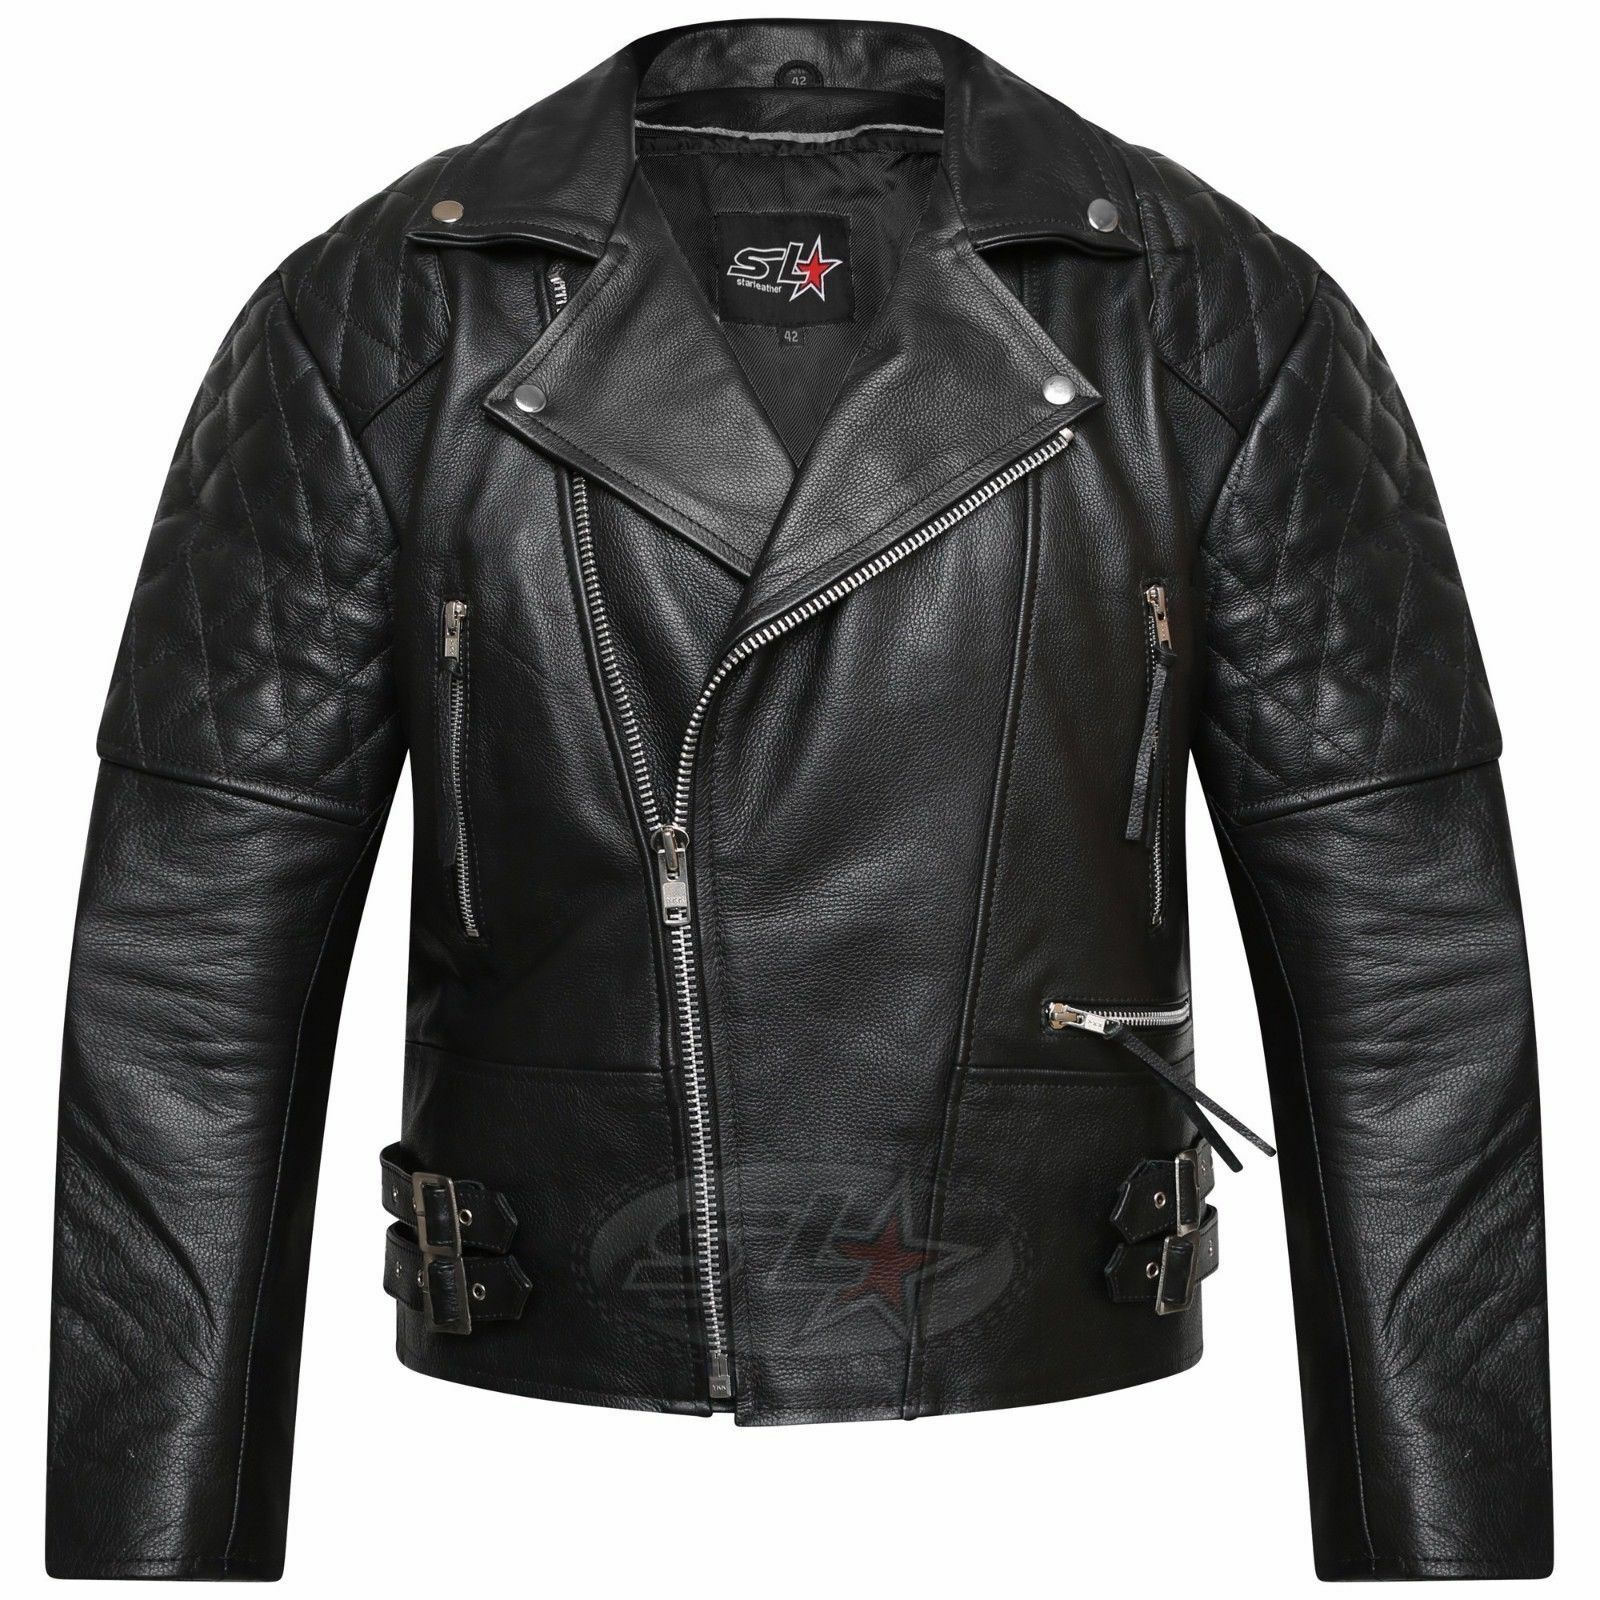 22d0016bb22 Details about MENS PLUS SIZE HIGH QUALITY CE ARMOUR MOTORCYCLE REAL LEATHER  BIKER JACKET